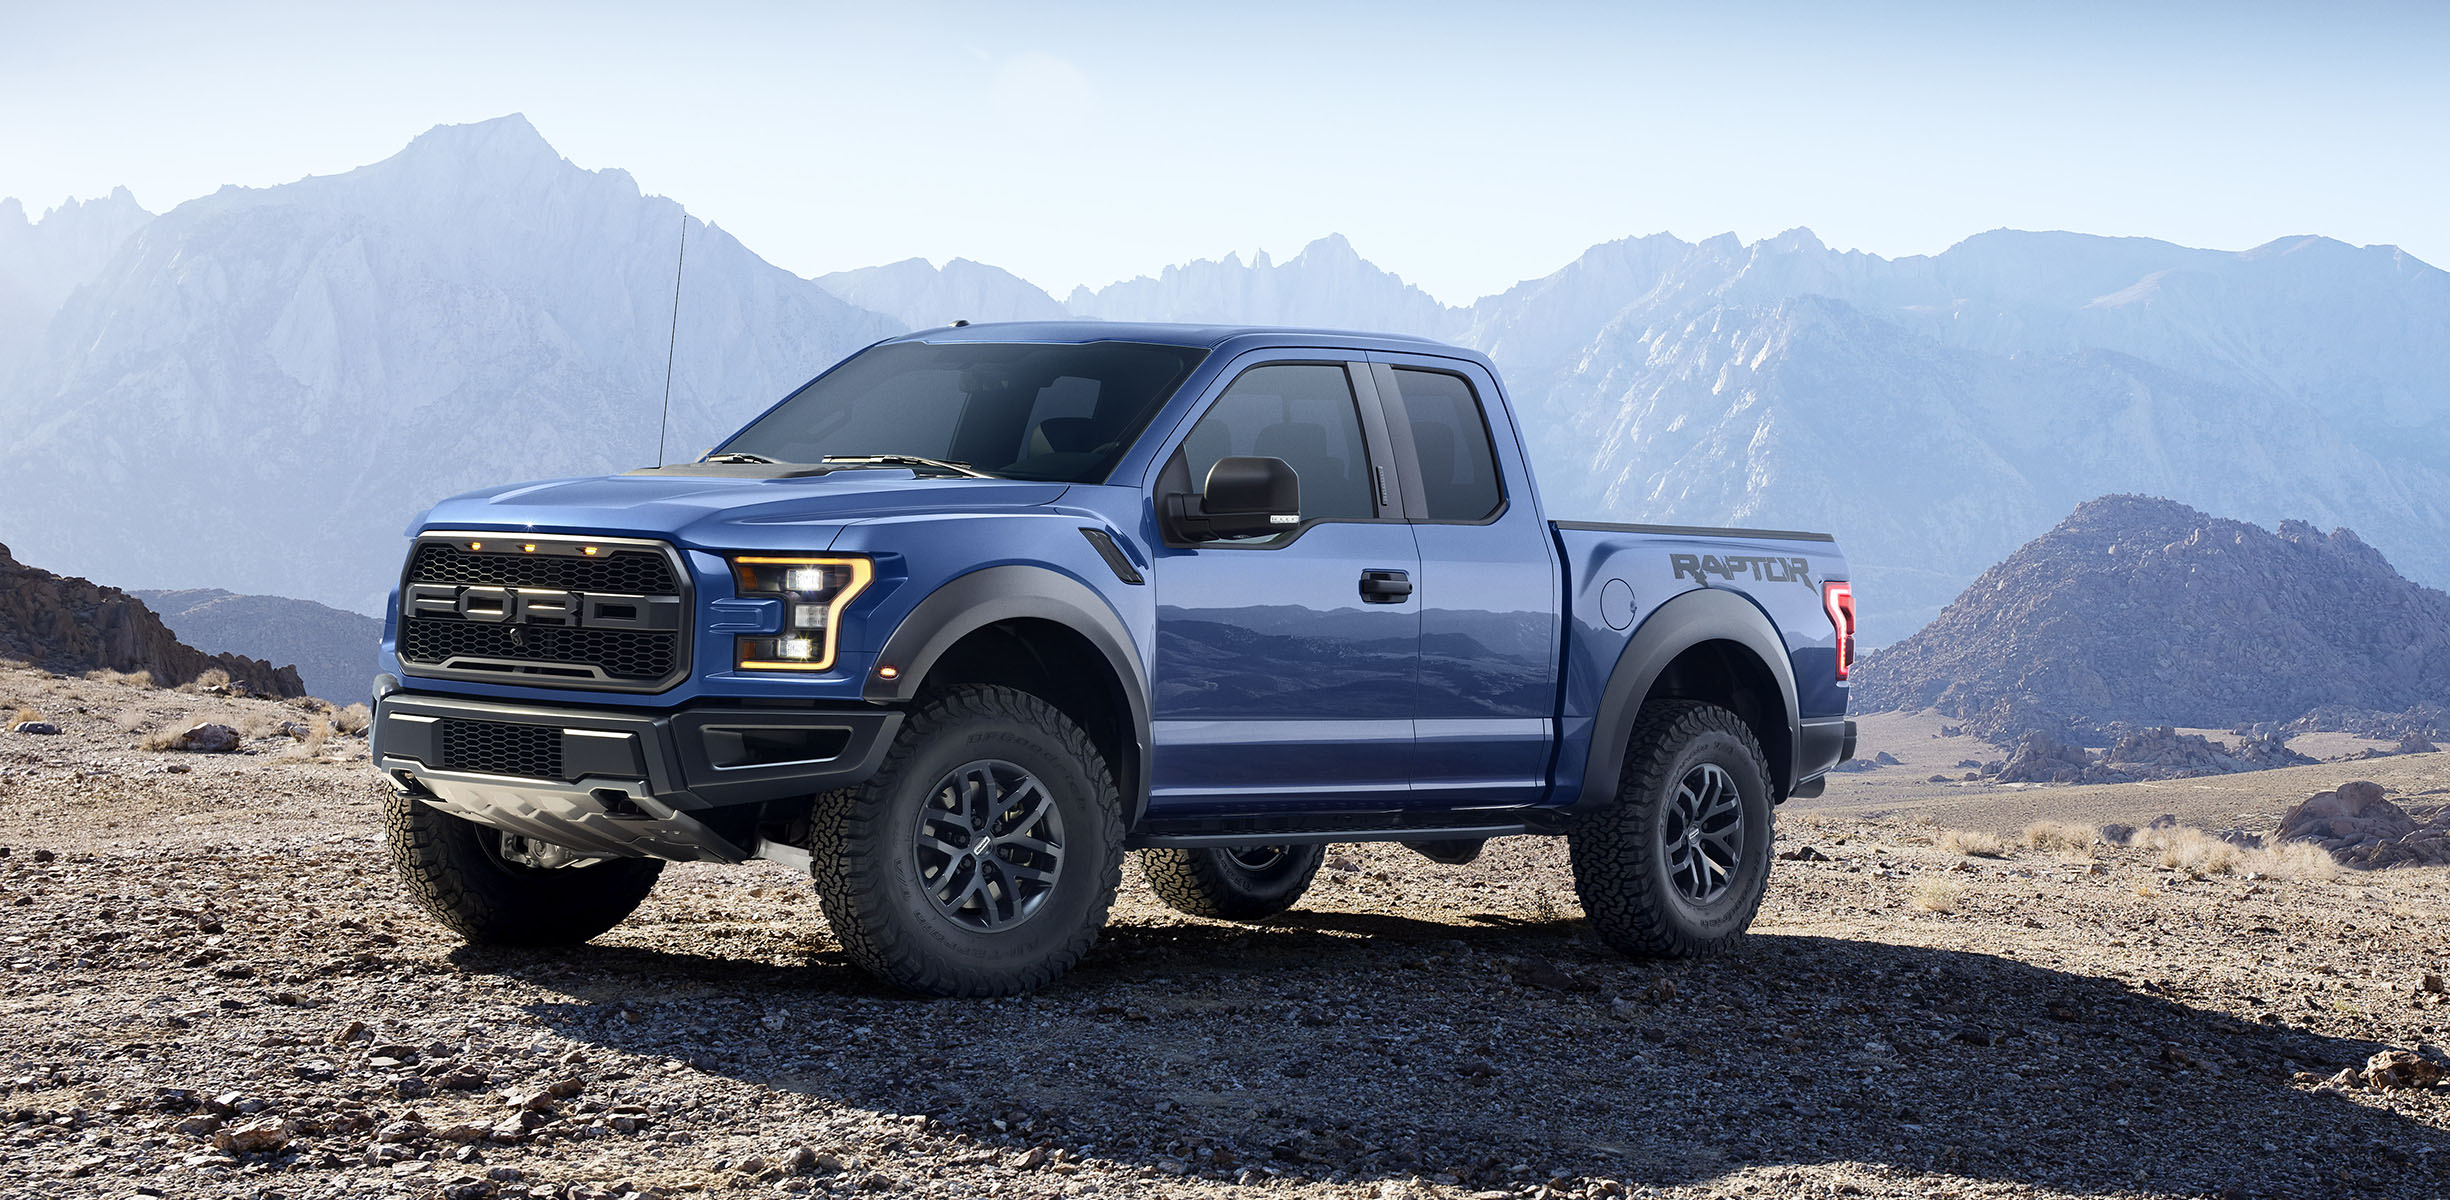 ford f 150 raptor mates 10 speed auto with high performance turbocharged 3 5 litre v6 photos. Black Bedroom Furniture Sets. Home Design Ideas